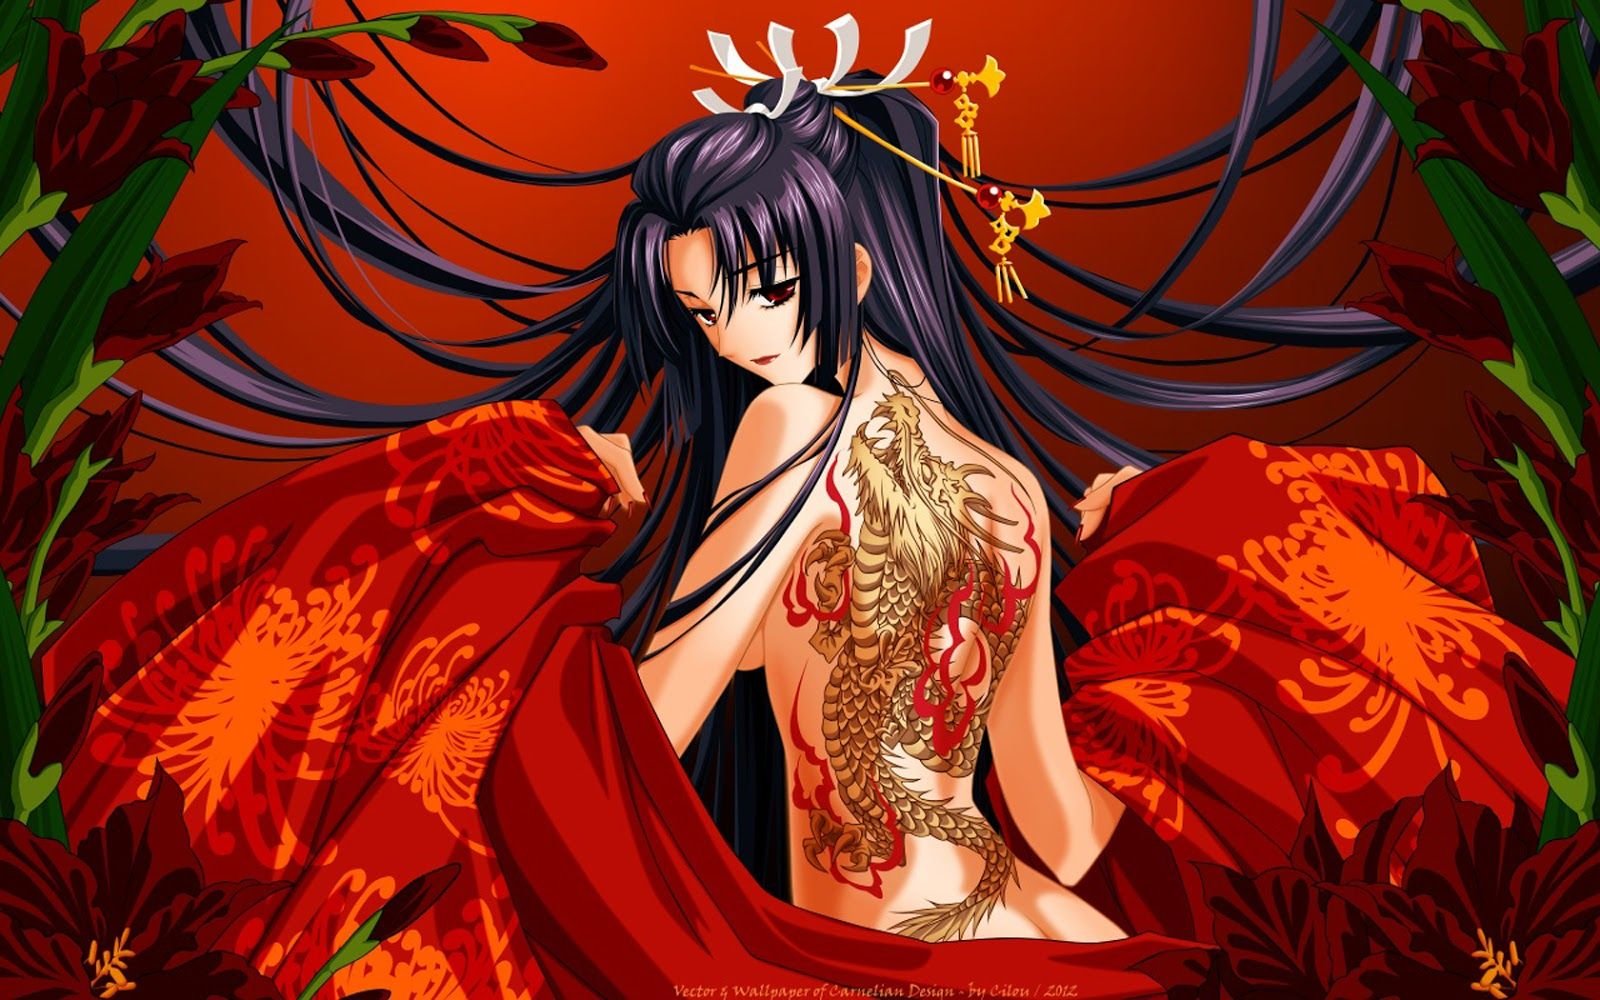 Naked anime girl dragon being sexy wallpaper Anime Girl Tattoo Wallpapers Top Free Anime Girl Tattoo Backgrounds Wallpaperaccess